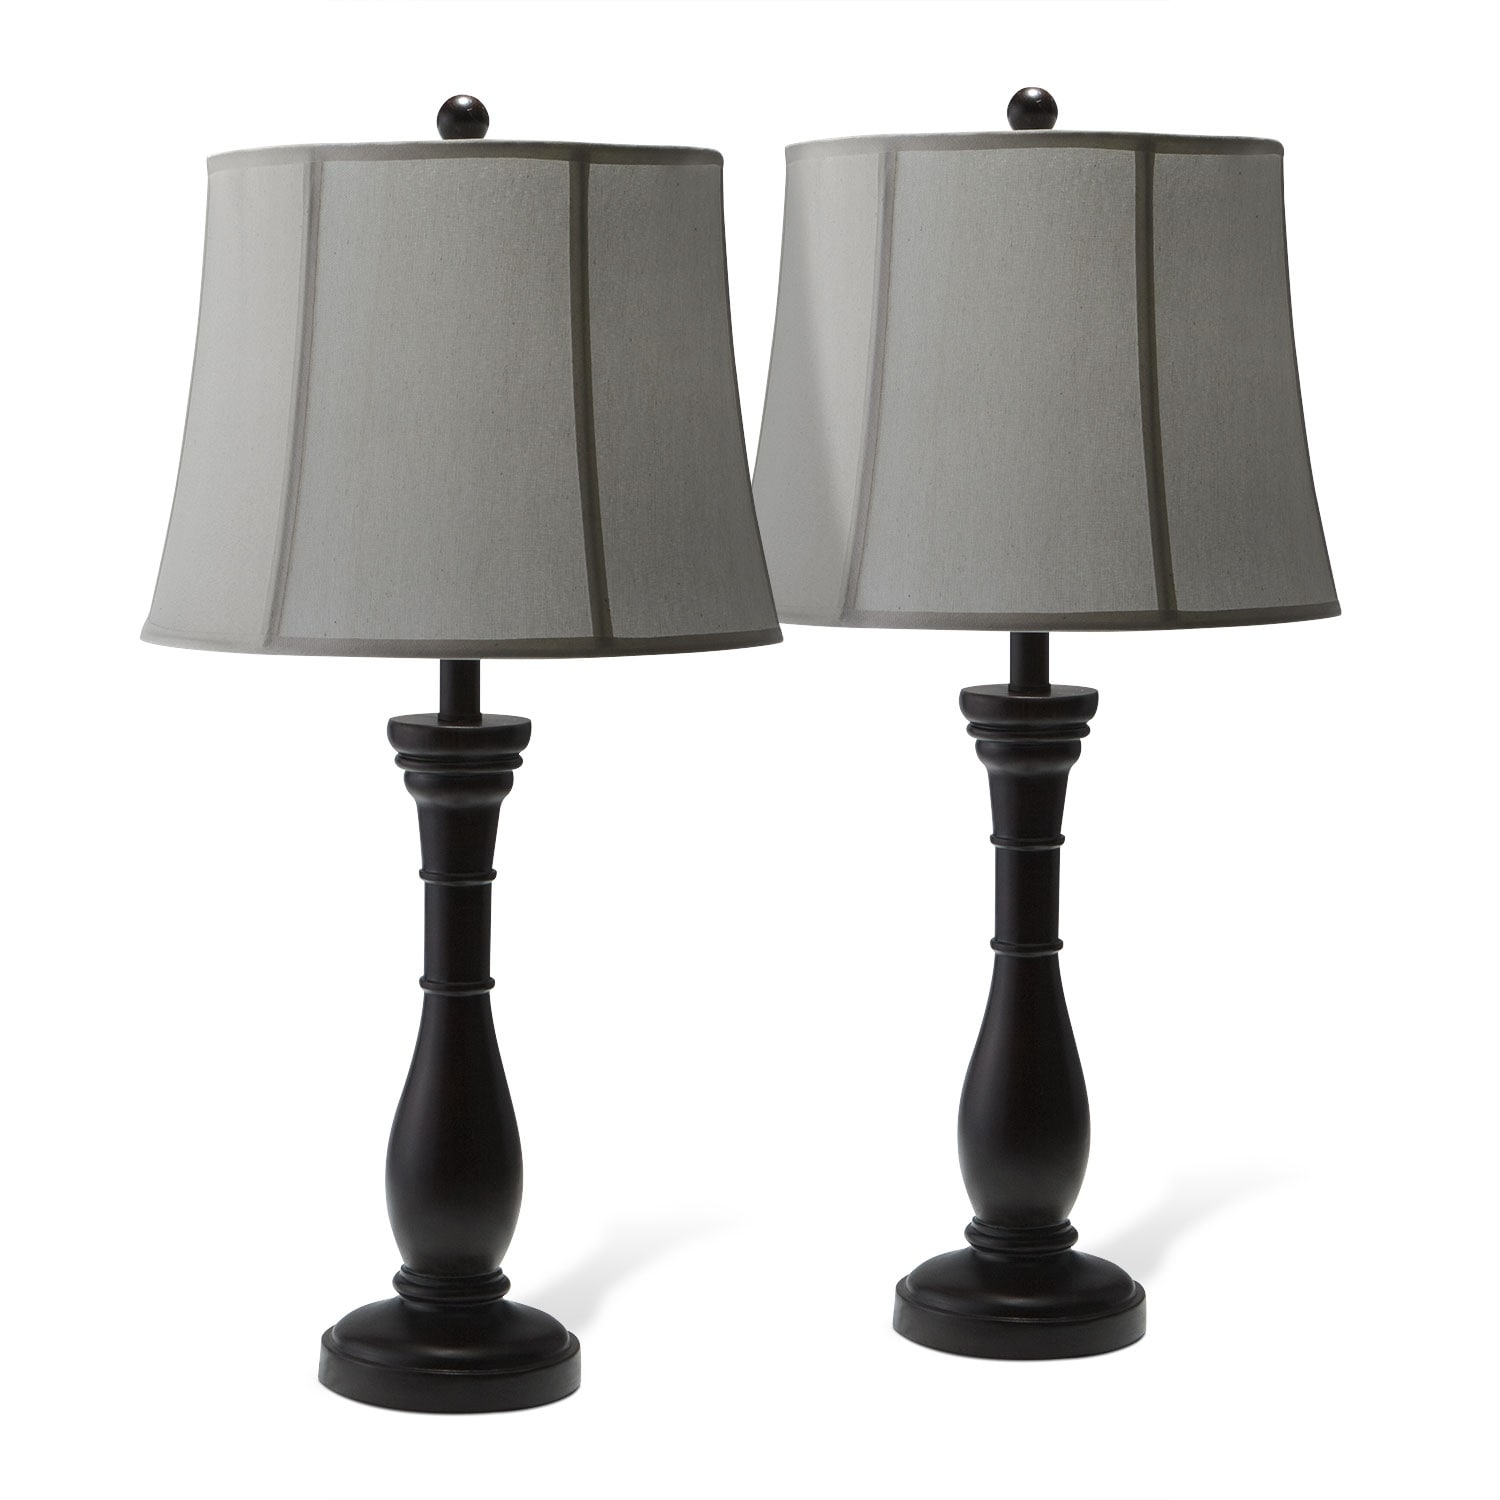 Home Accessories - Annette Set of 2 Table Lamps